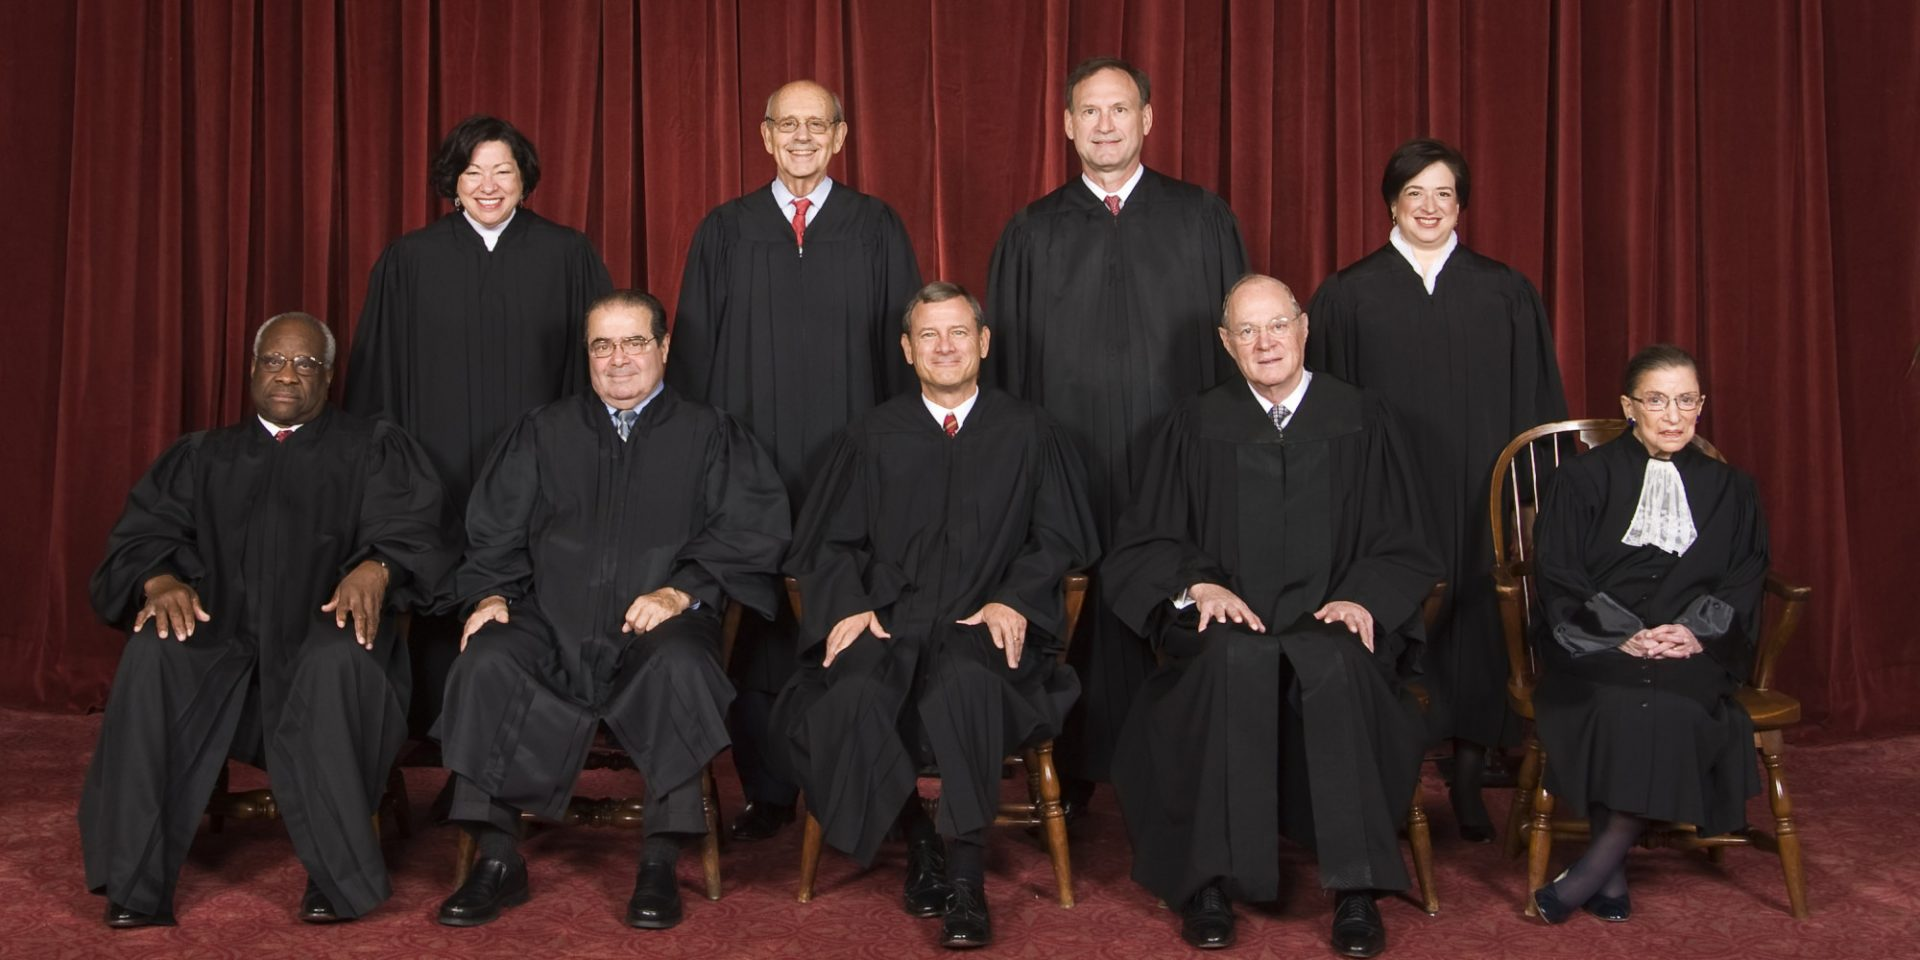 Supreme Court Rulings vs. U.S. & Idaho Constitutions